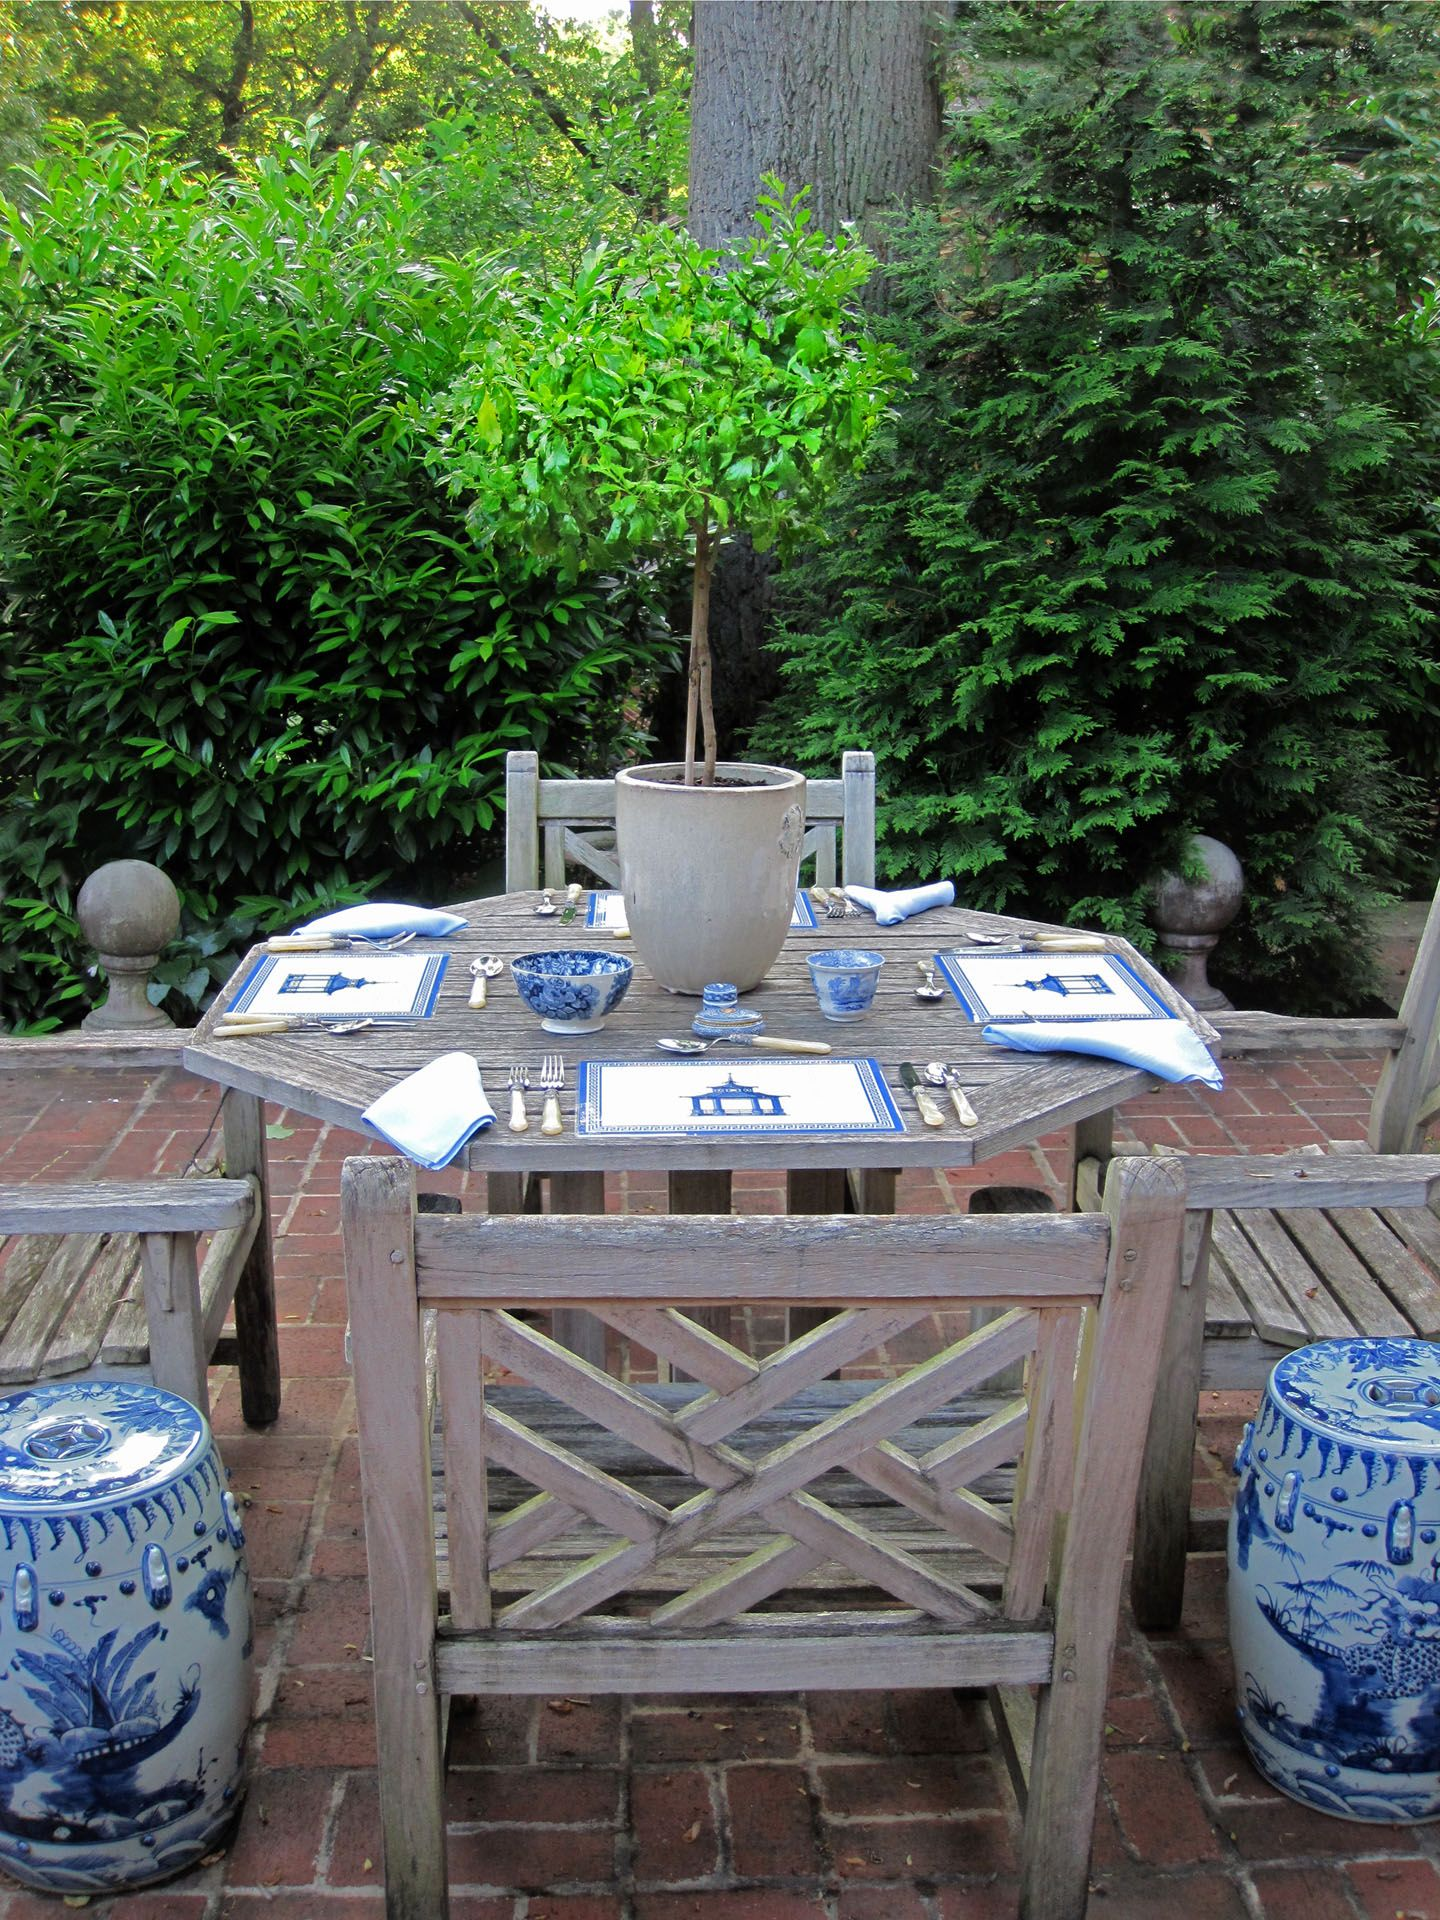 Blue & white garden stools with teak outdoor furniture in pretty ...